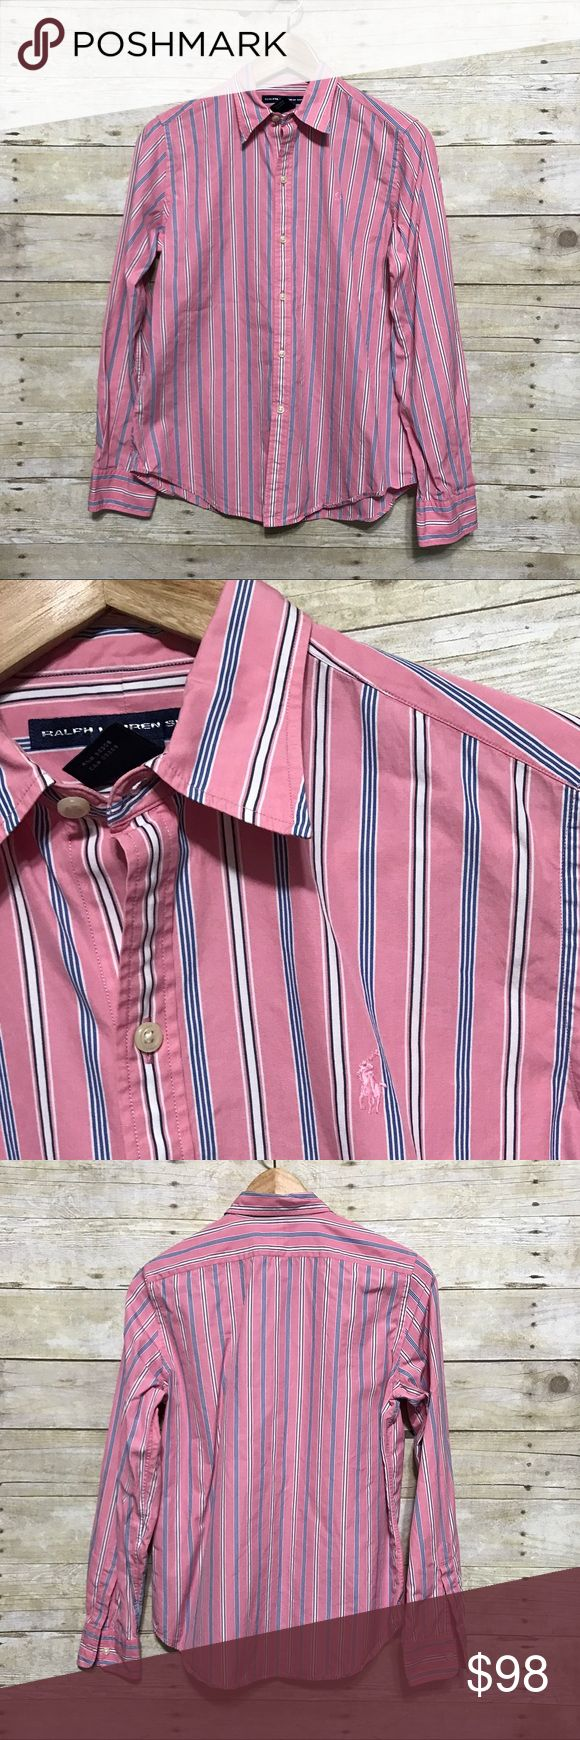 Ralph Lauren Sport striped cotton shirt, sz. M Ralph Lauren Sport striped cotton shirt, sz. M. Gently used.   Bundle discounts available! Sorry no trades 😊  Like what you see? Please check out all my listings and follow me! Instagram: dejavuapparel Pinterest: dejavuapparel  Twitter: _dejavuapparel . Ralph Lauren Tops Button Down Shirts